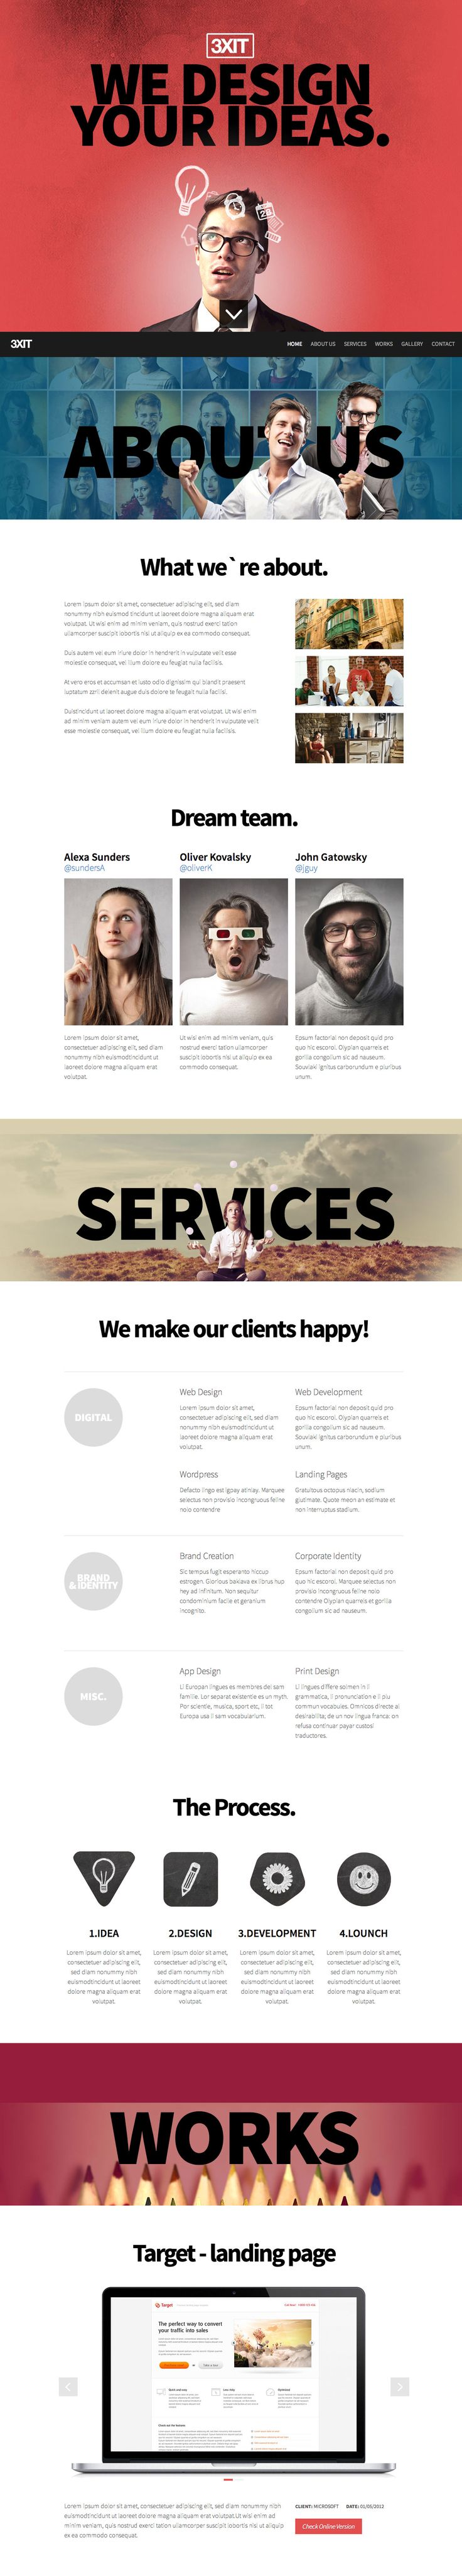 'Exit' is a $13 HTML template aimed at agencies and design firms. It makes use of big bold text which makes an impact but the overall feel is still kept quite light. The main feature are windows of parallax scrolling which is used sparingly enough to not turn it into a gimmick. The template also includes an option to use a video background. Nice touch with the gallery section against the brick wall background.